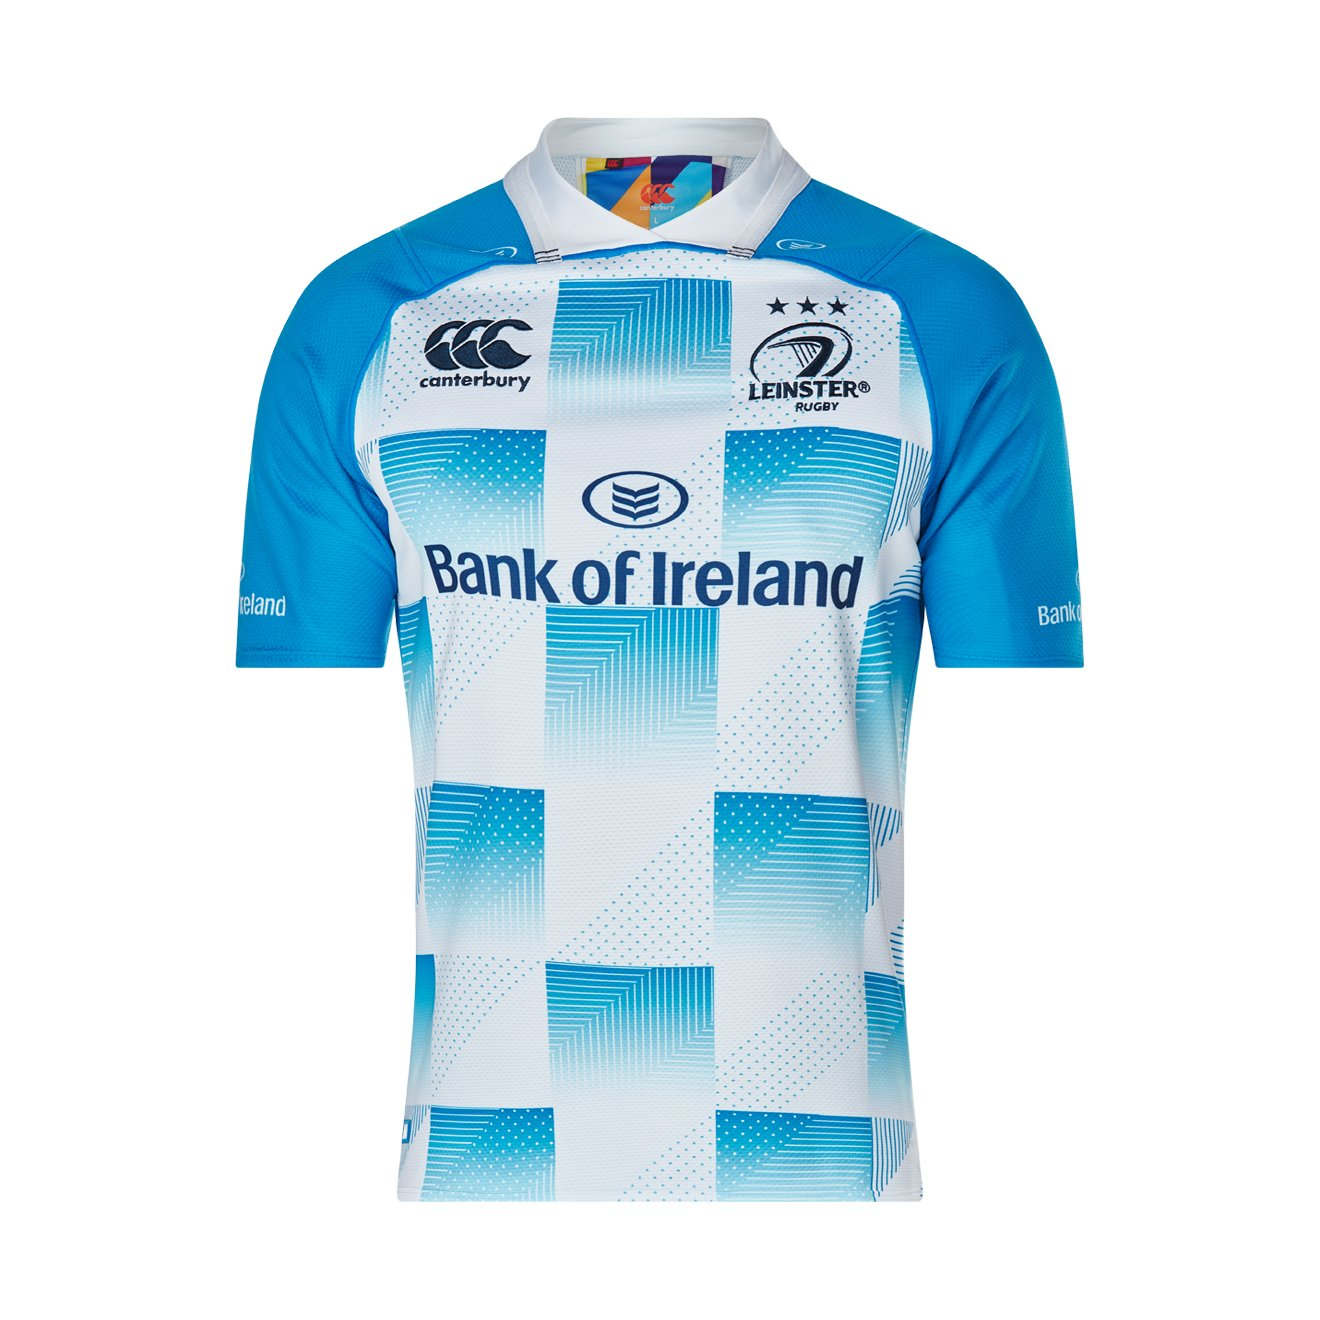 Offizielles Herren 's Leinster Rugby vapodri Plus Short Sleeve Alternate Pro Jersey Canterbury B909181-A81-L